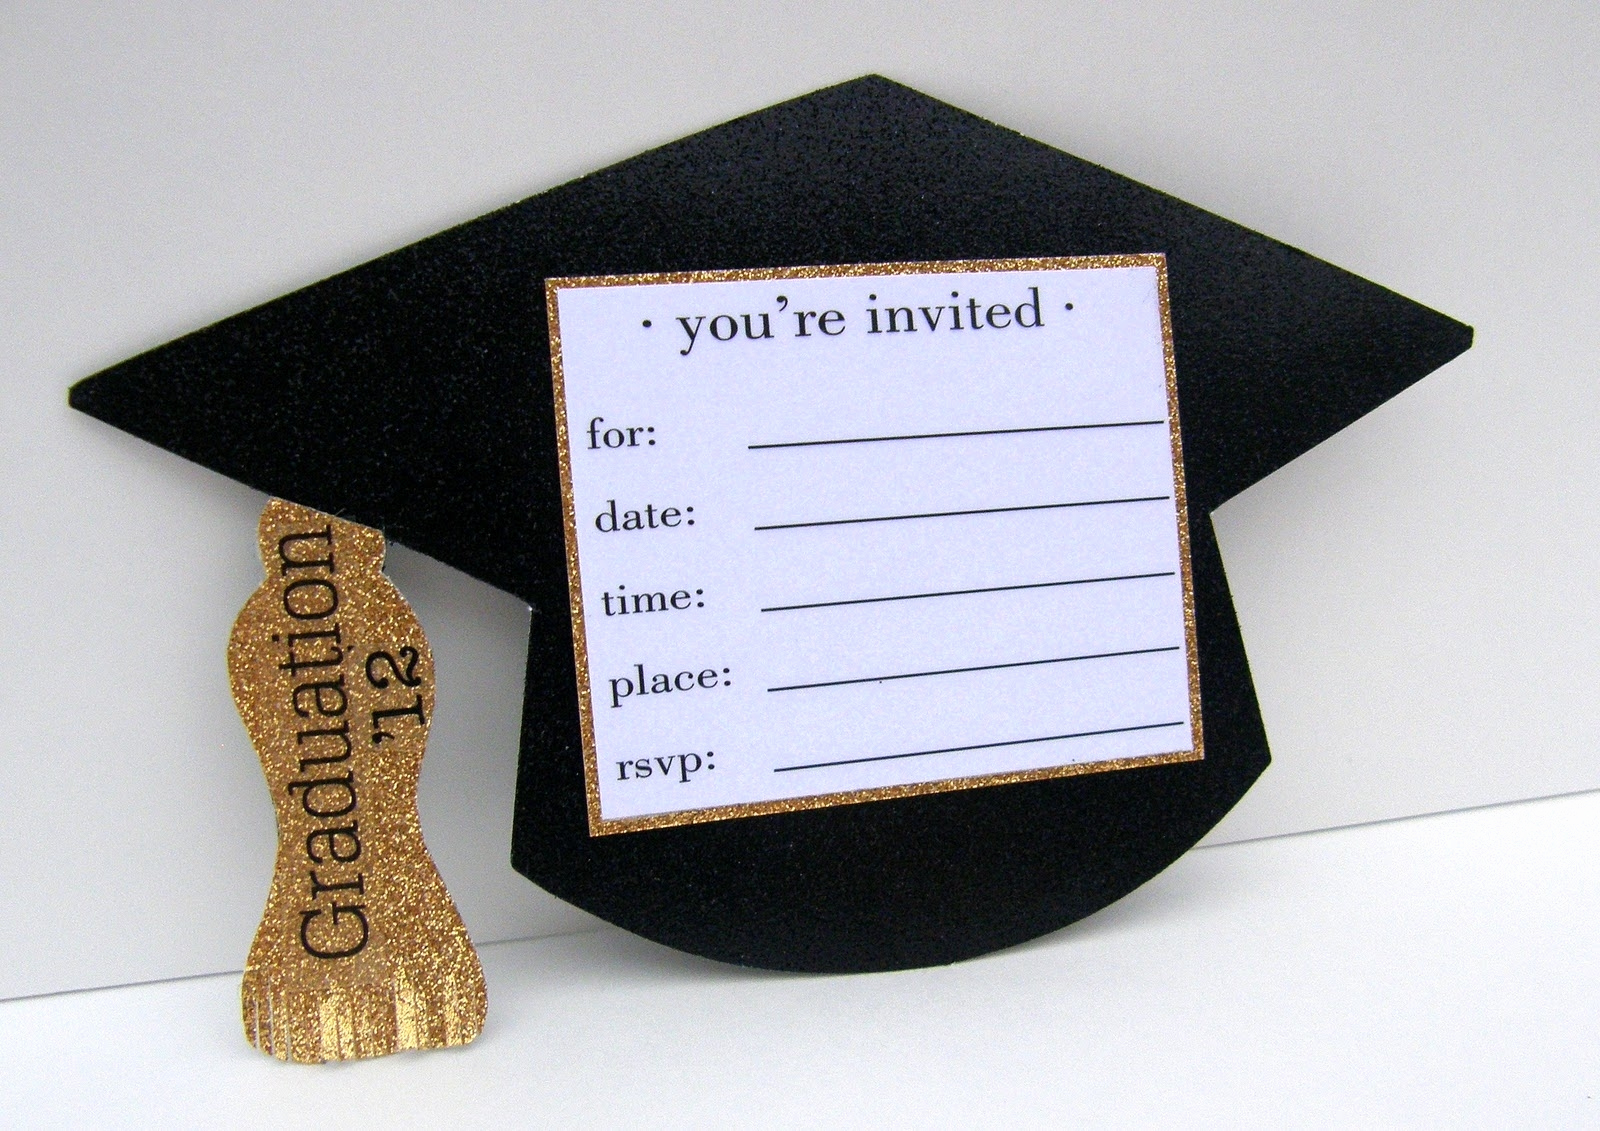 Homemade Graduation Invitation Ideas Lovely Homemade Graduation Invitation Ideas Cobypic